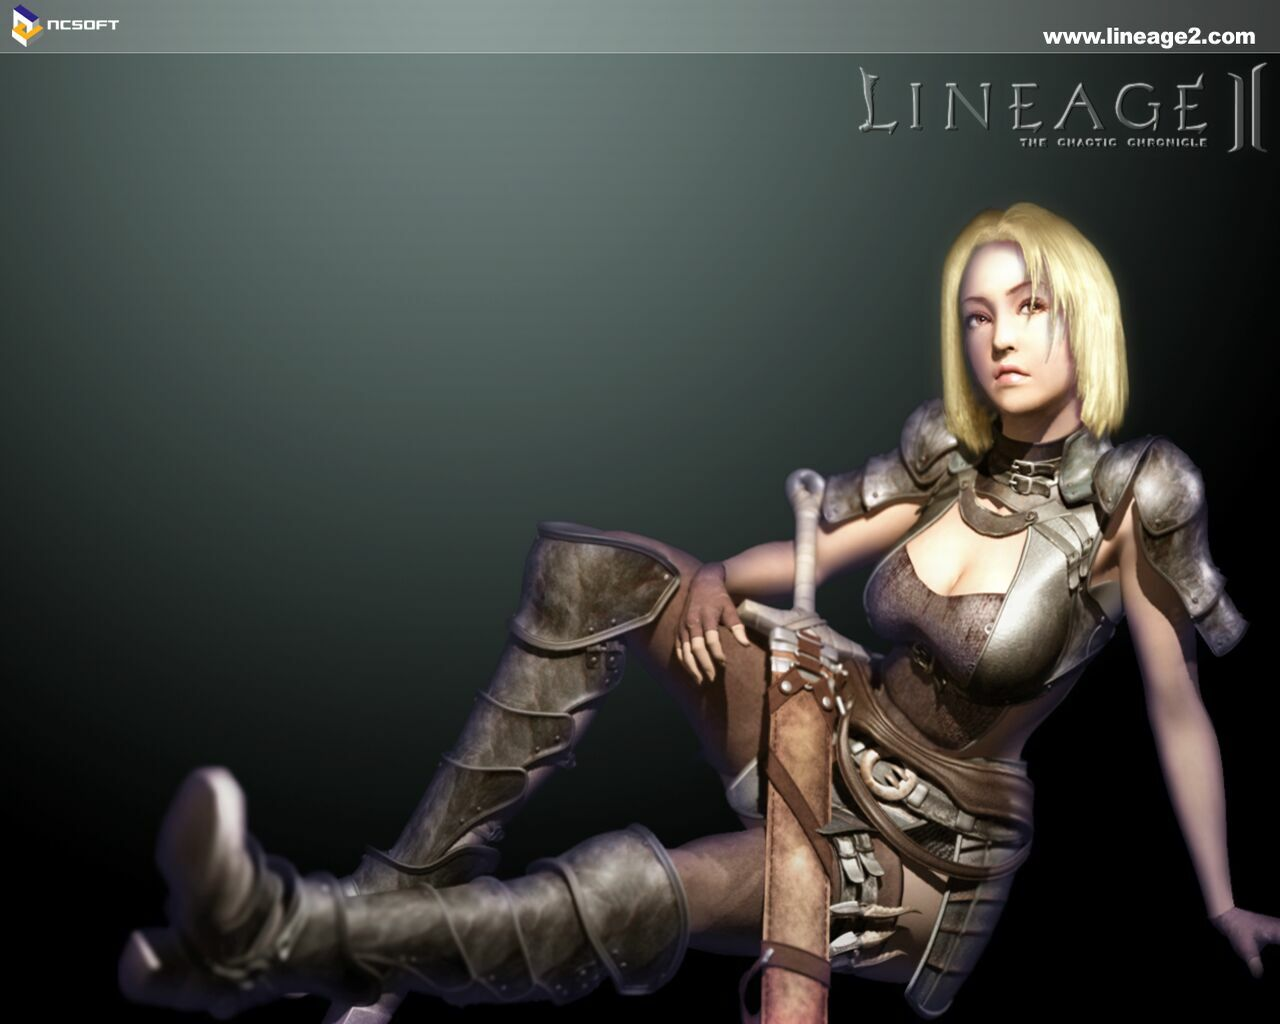 Lineage 2 erotic arts porncraft tube